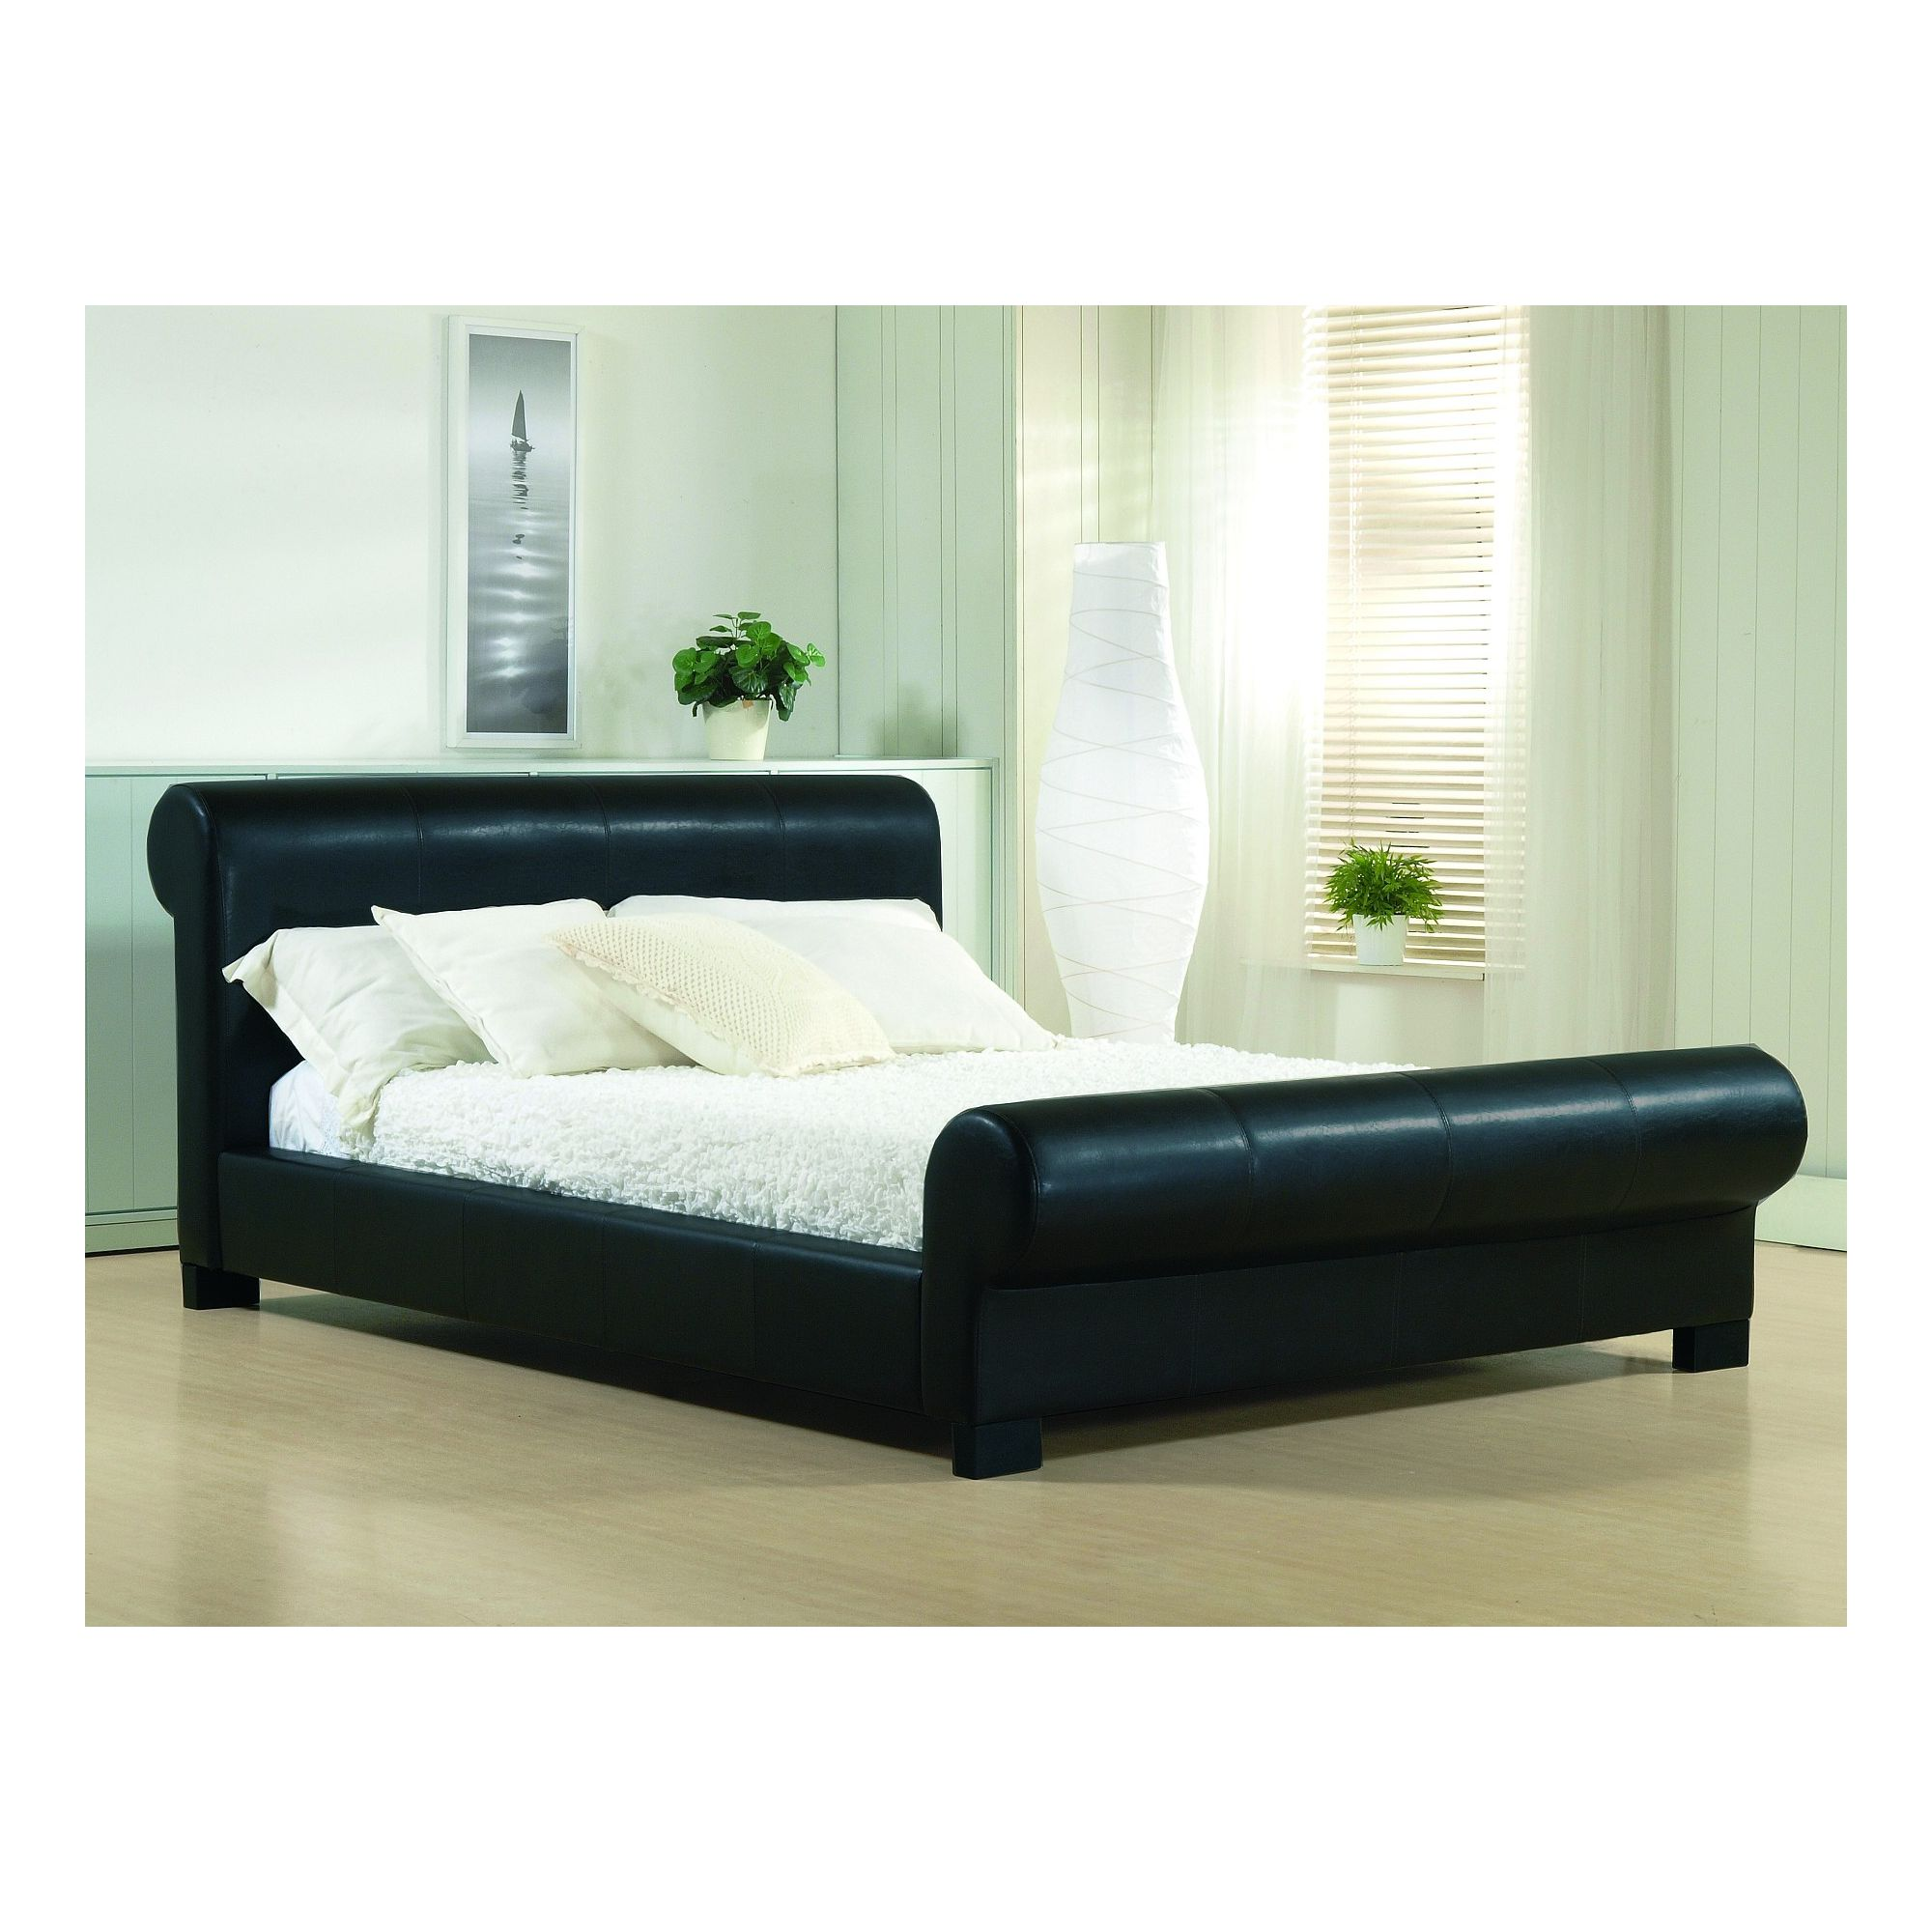 Altruna Valencia Faux Leather Bed Frame - Double - Black at Tesco Direct